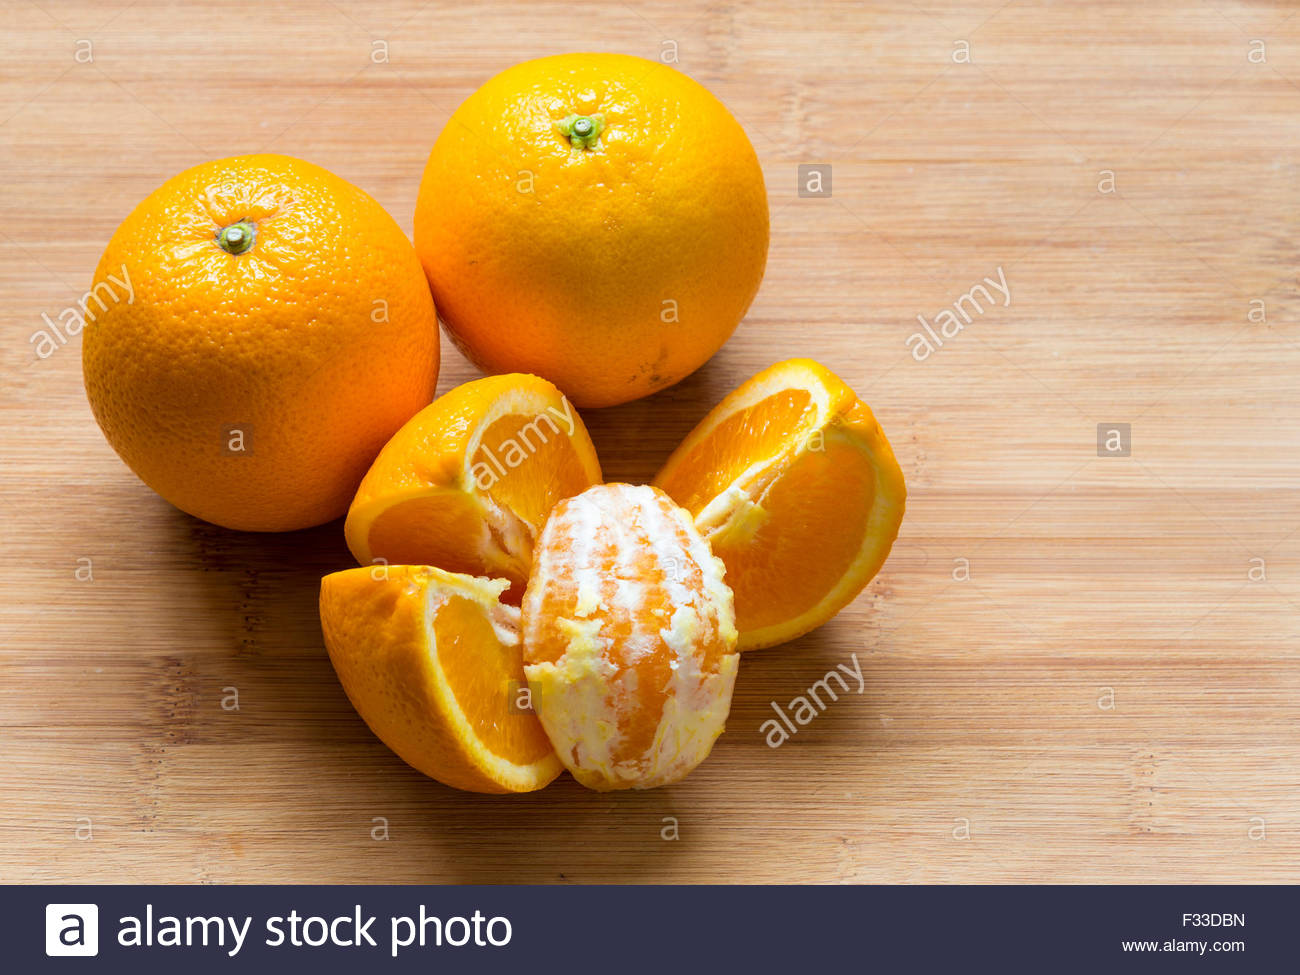 Oranges placed on a wooden chopping board. There are two whole oranges and four quarter cut pieces with one peeled - Stock Image